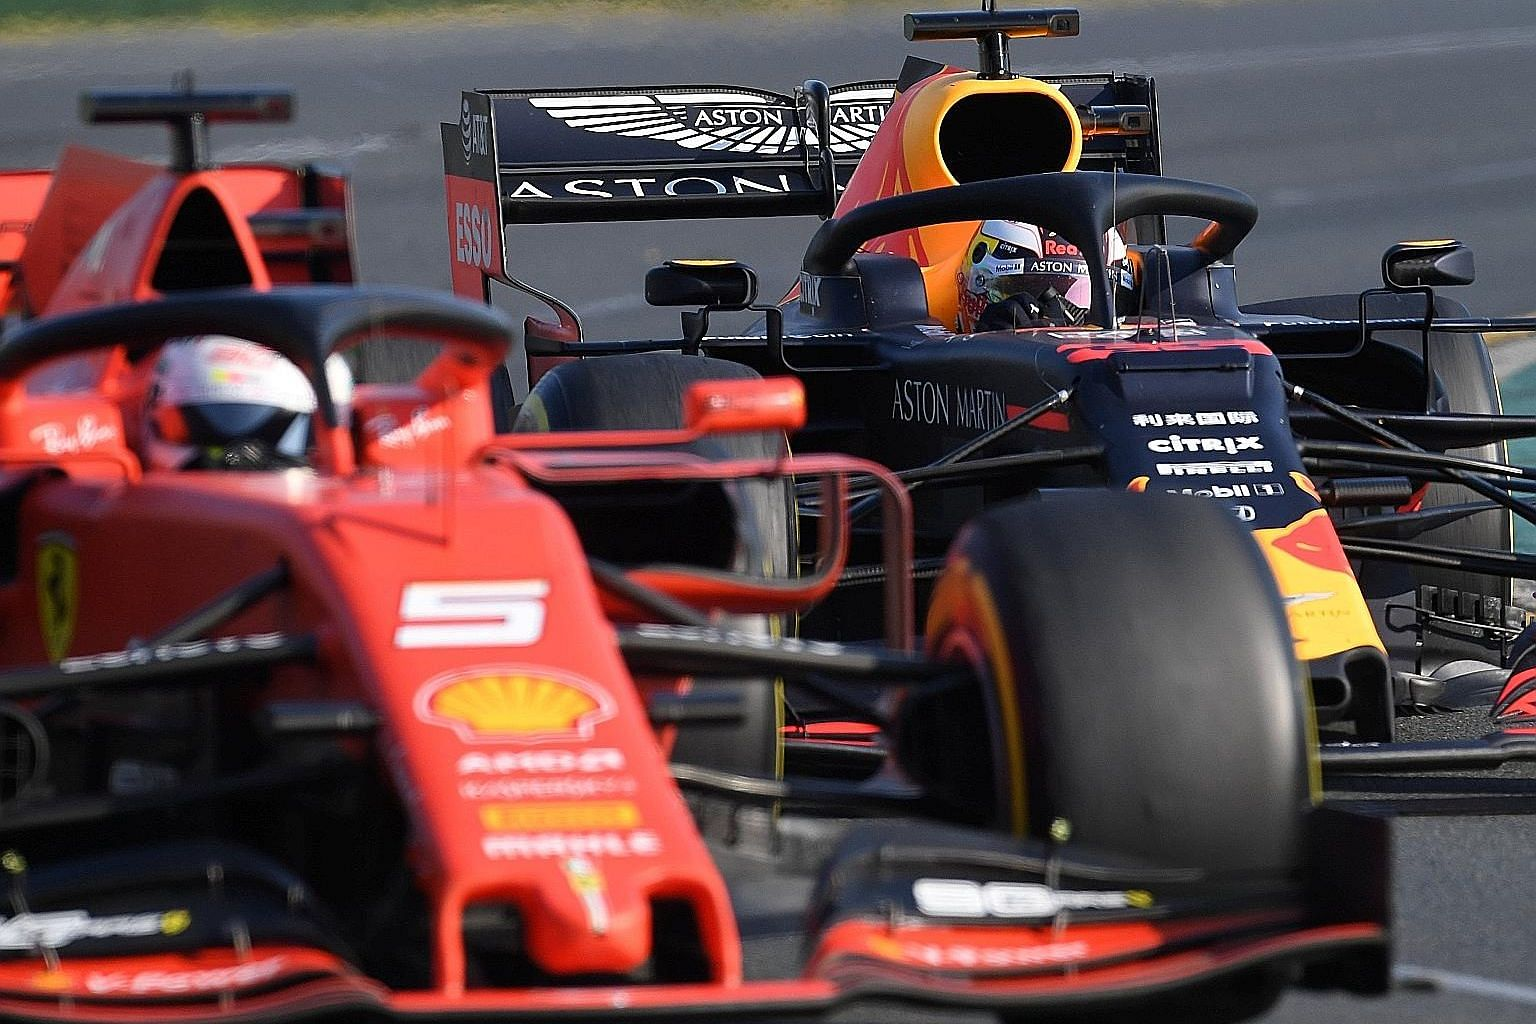 Red Bull's Max Verstappen chasing down Ferrari's Sebastian Vettel before catching him on Lap 30 and holding on for a podium place.